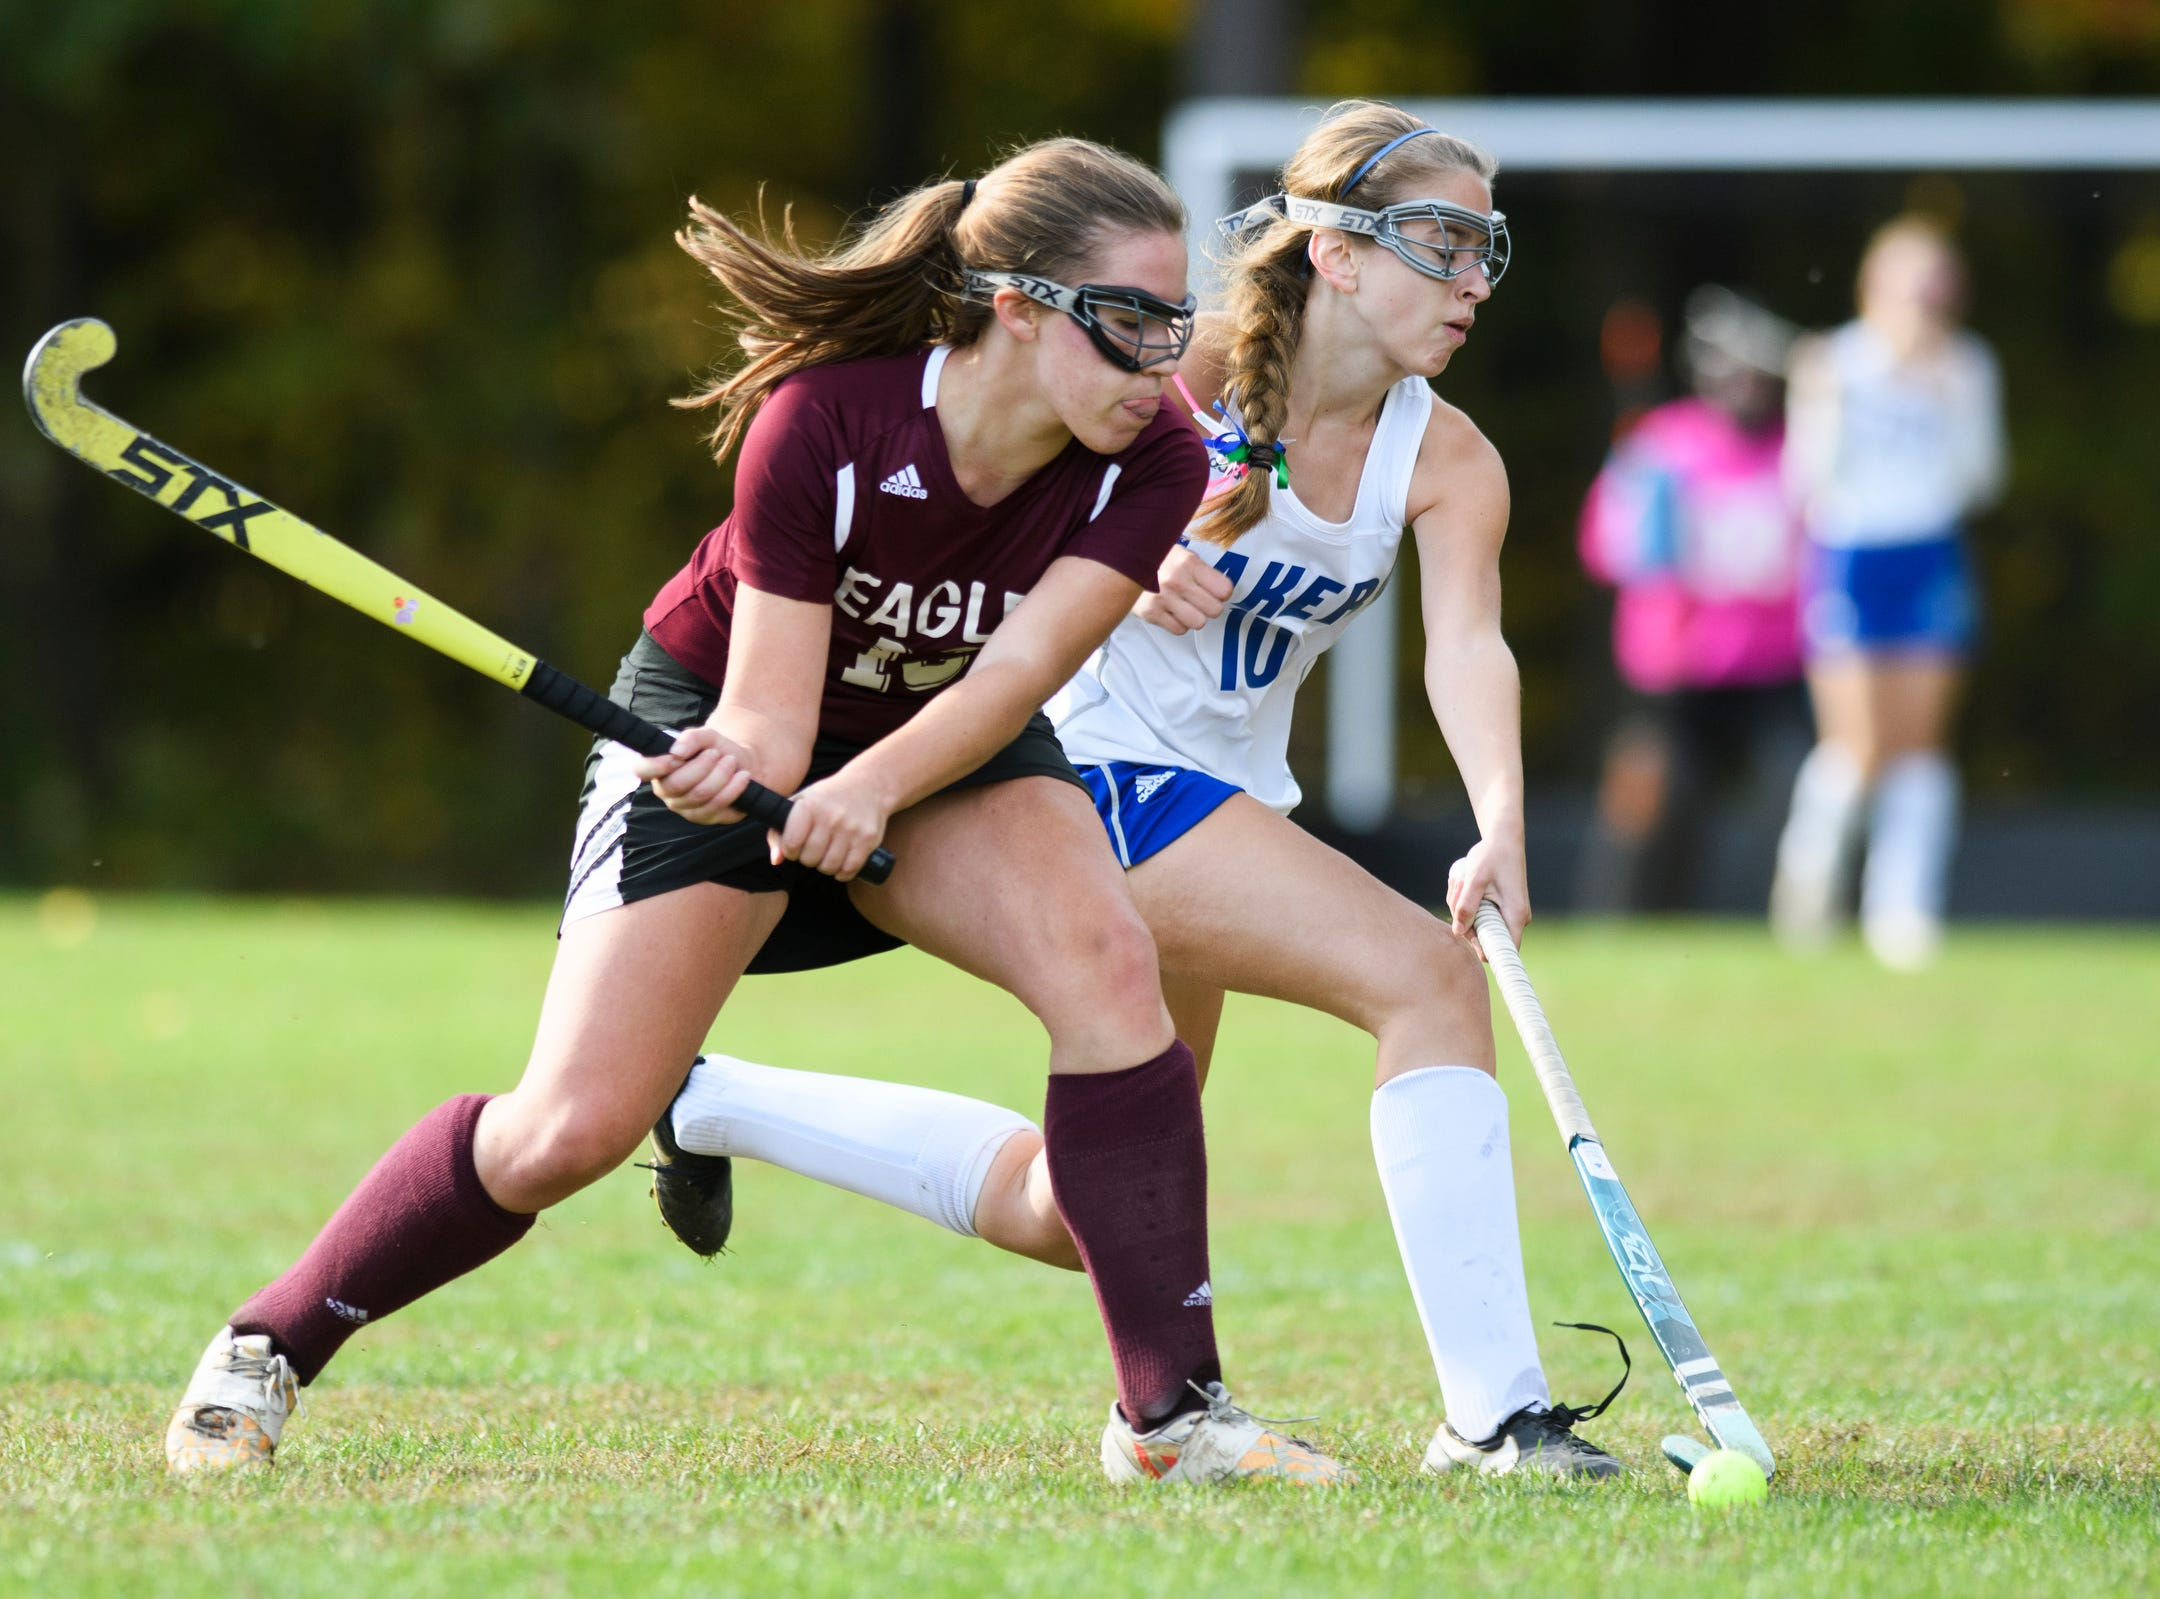 Colchester's Hannah Carroll (10) tries to block the shot by Mt. Abraham's Abby Hoff (13) during the field hockey game between Mount Abraham and Colchester at Colchester High School on Saturday morning October 20, 2018 in Colchester.